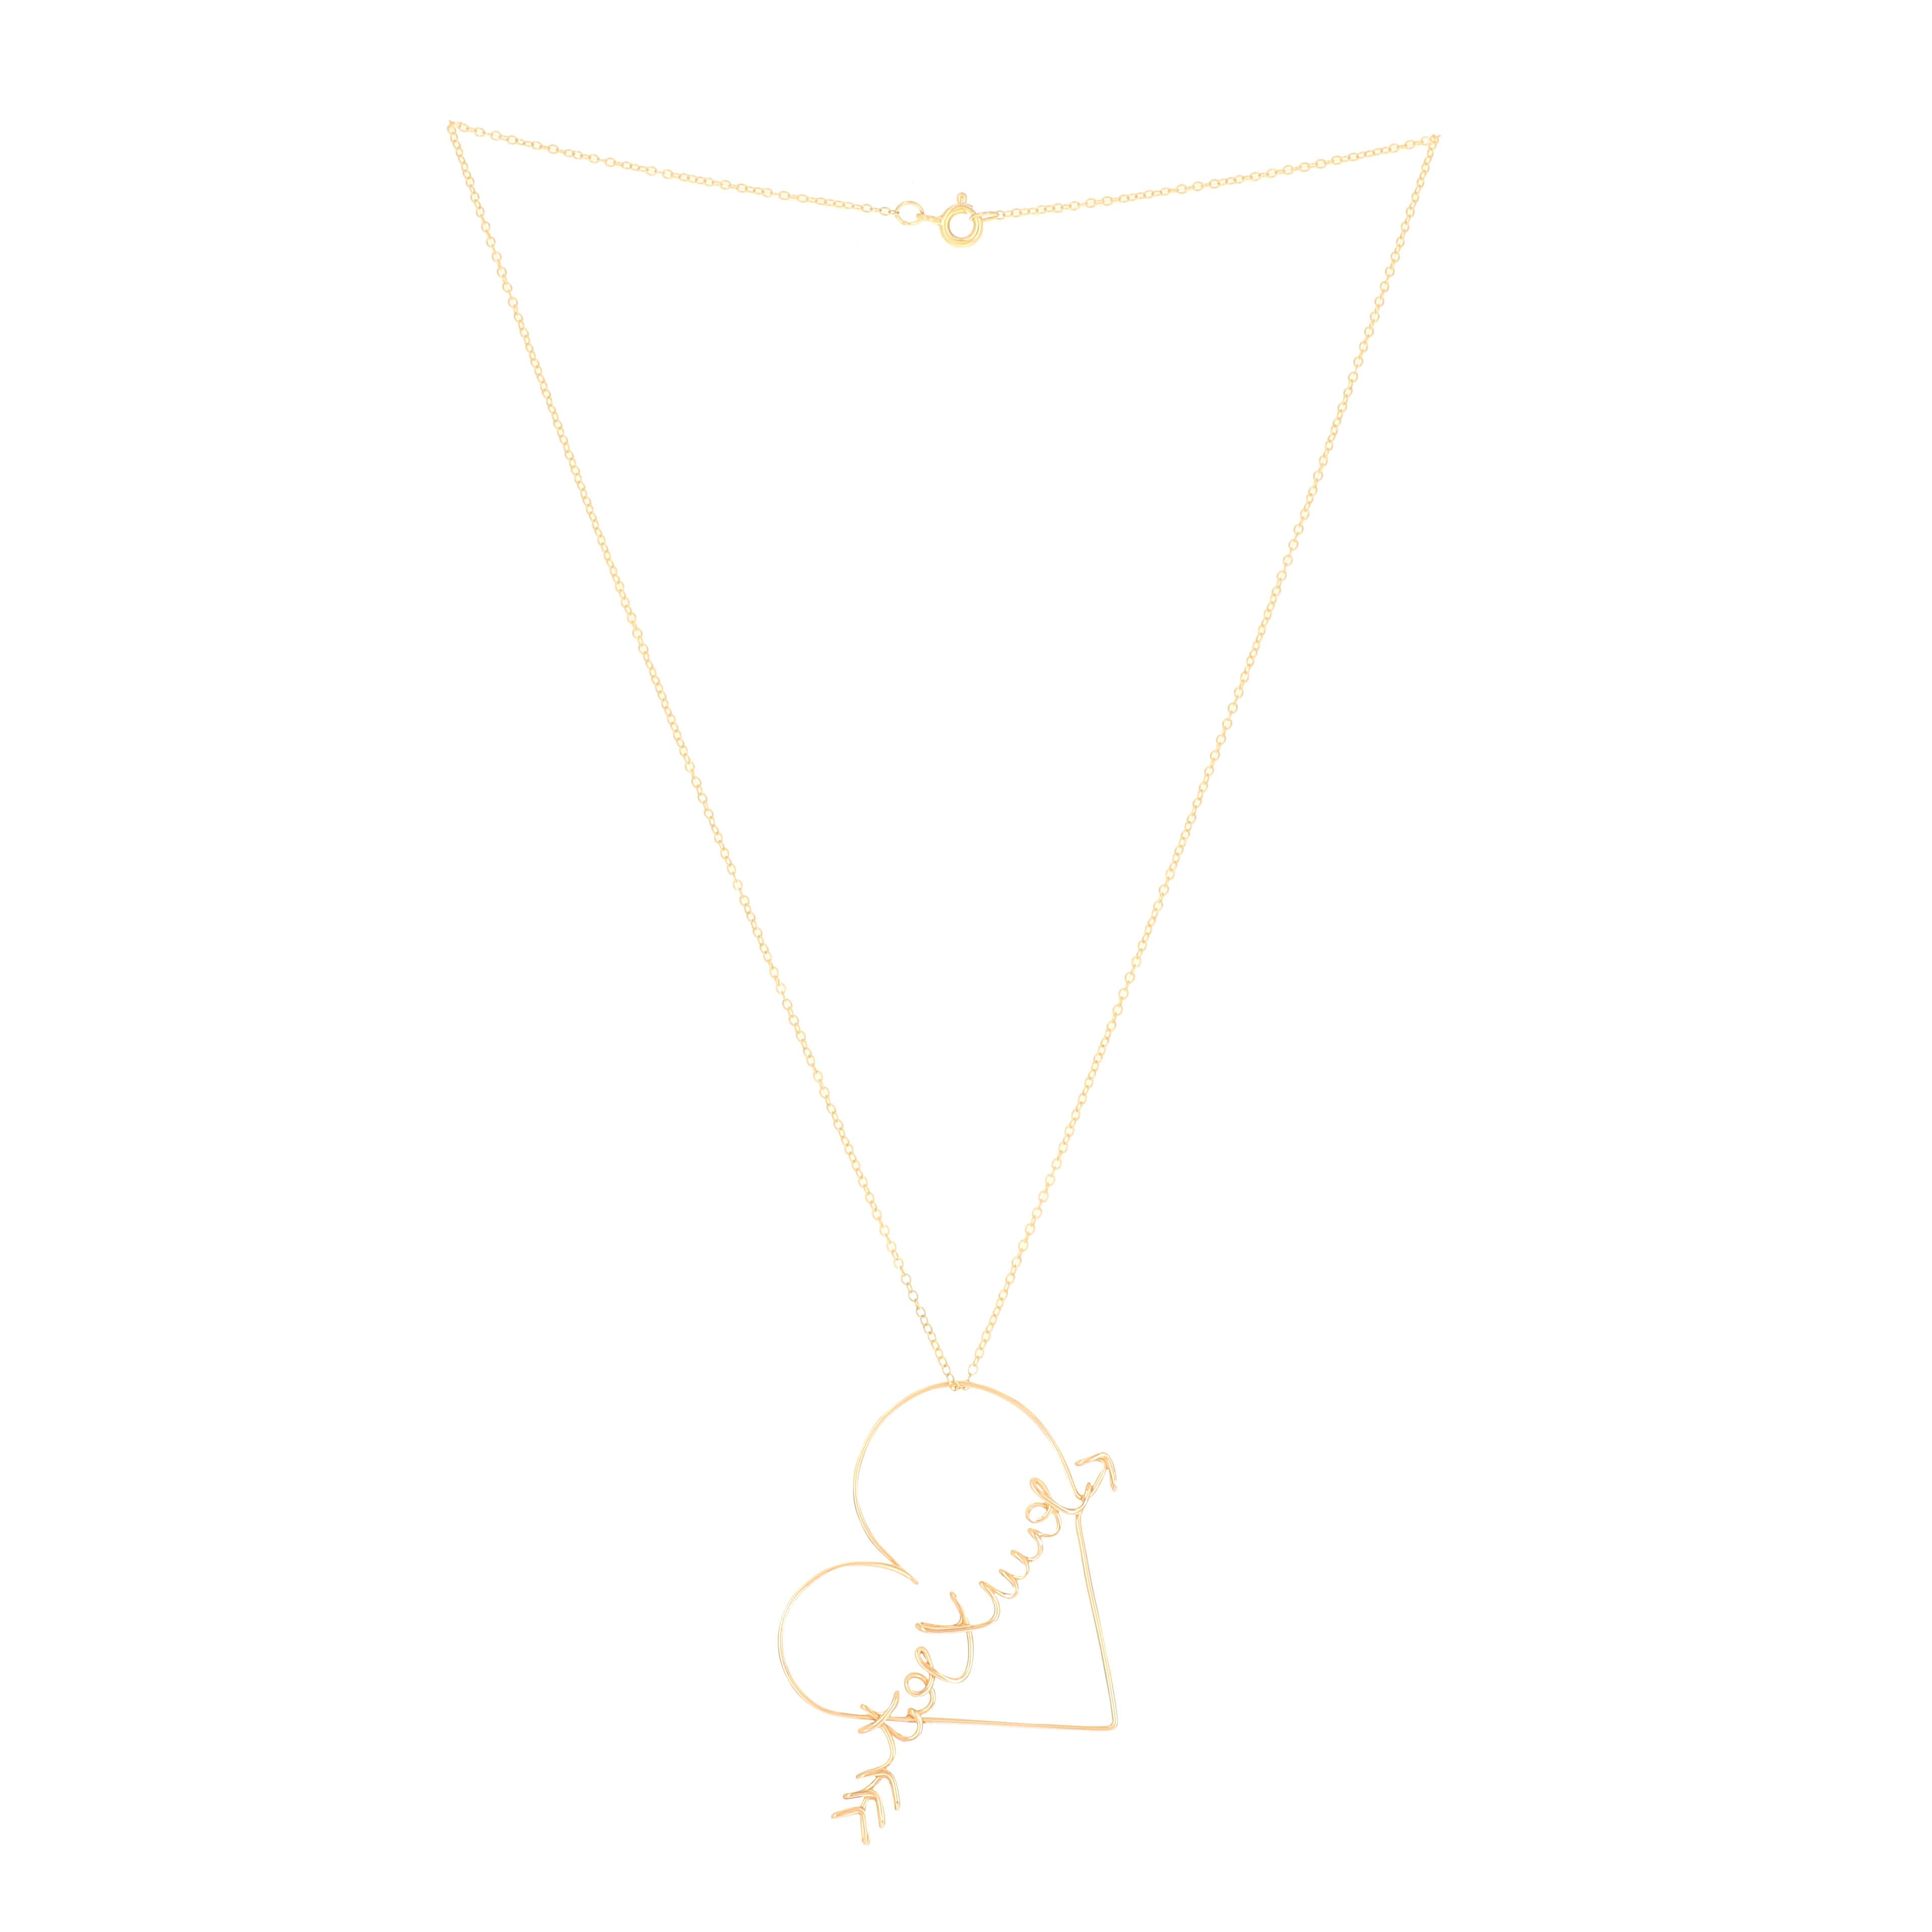 ATELIER PAULIN - Collier Toi x Moi Gold Filled 14K Jaune